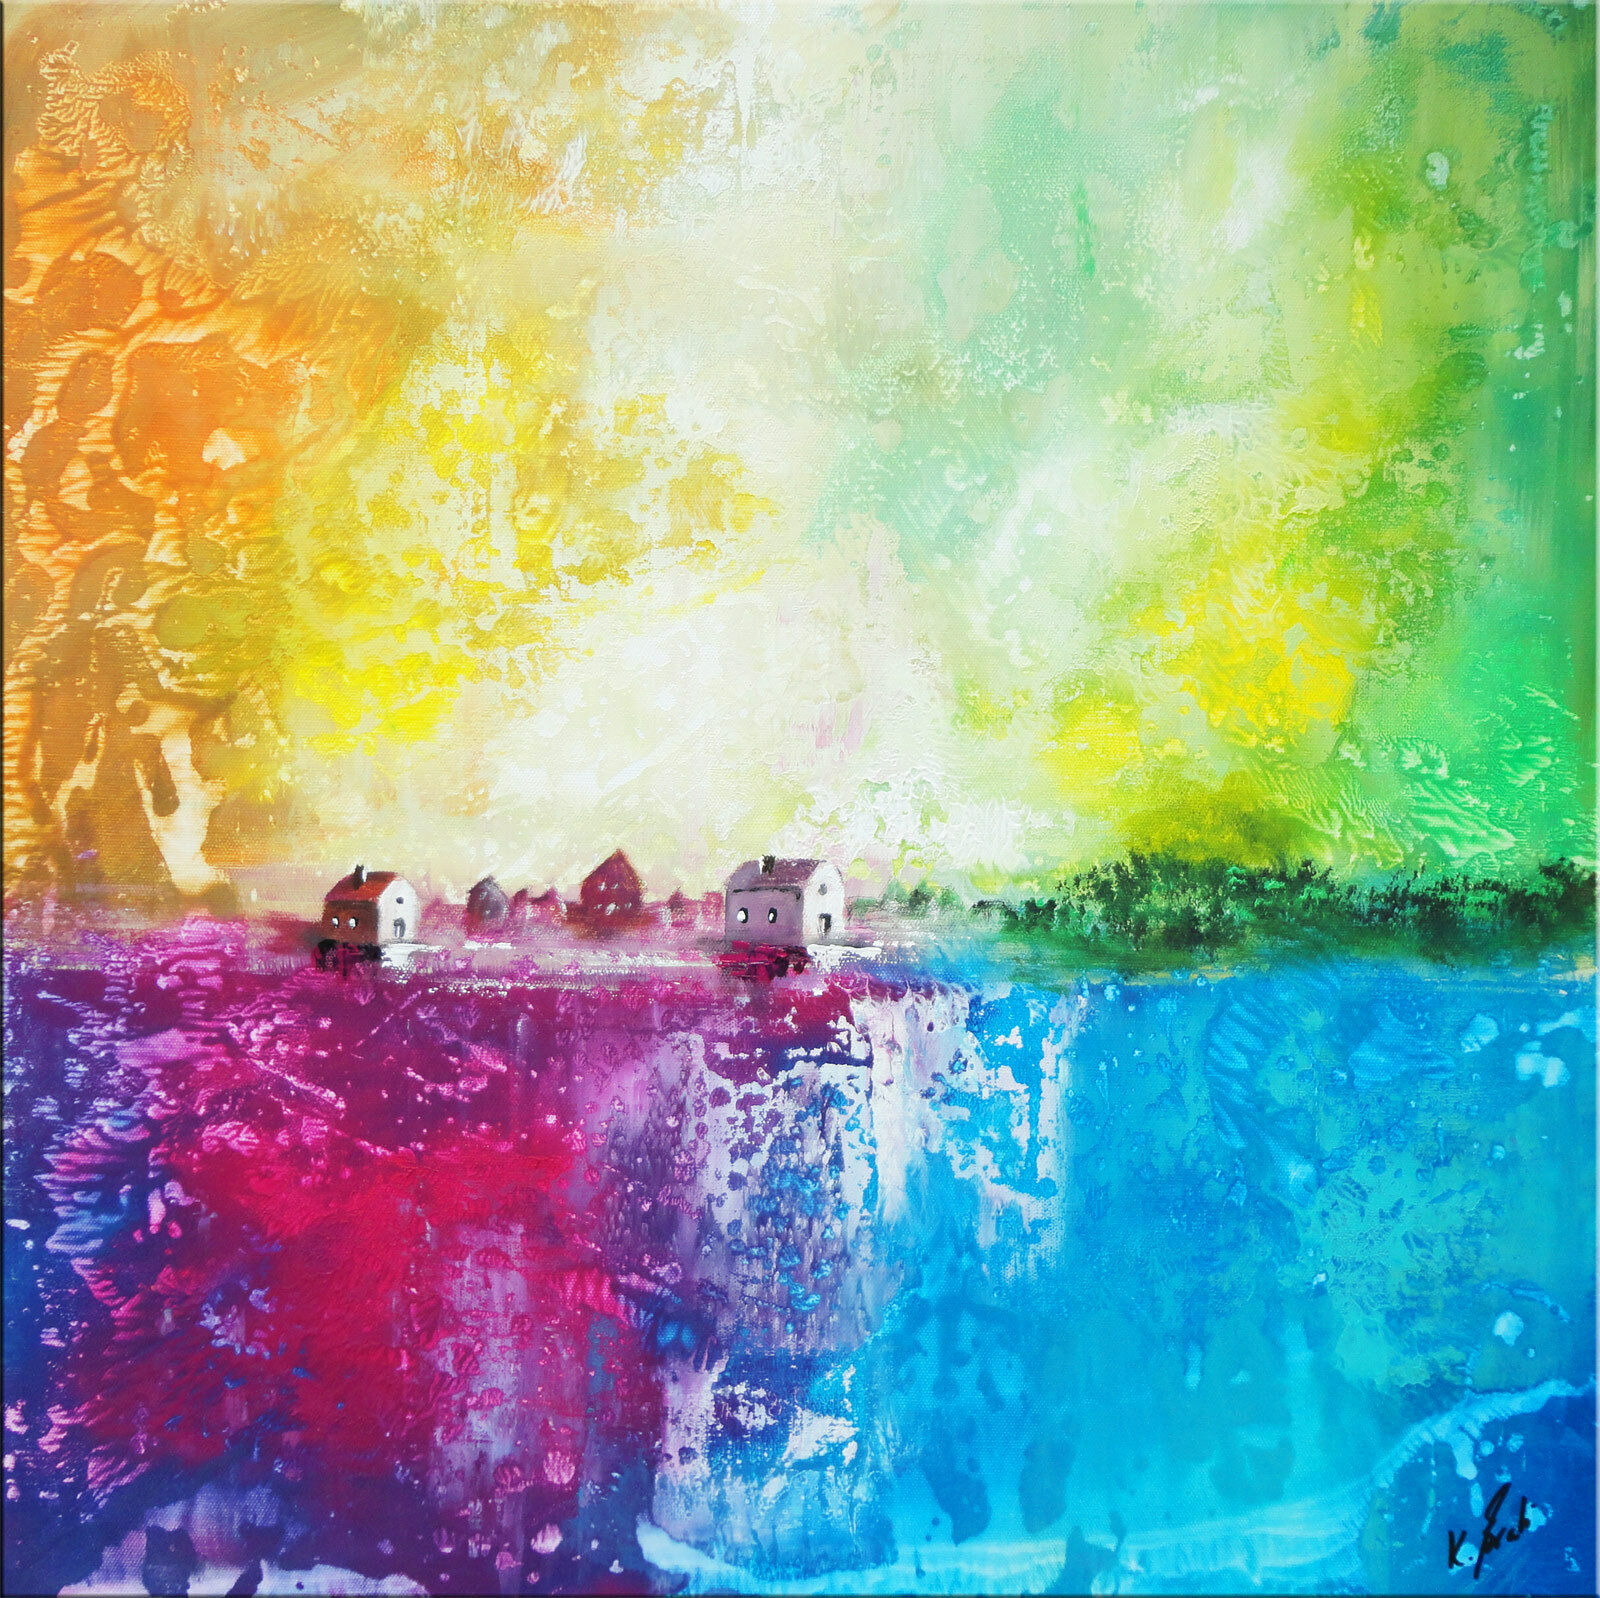 Skyline Abstrait Image Toile Abstrait Skyline Art images la fresque art Pression Neuf d0038 026b2d